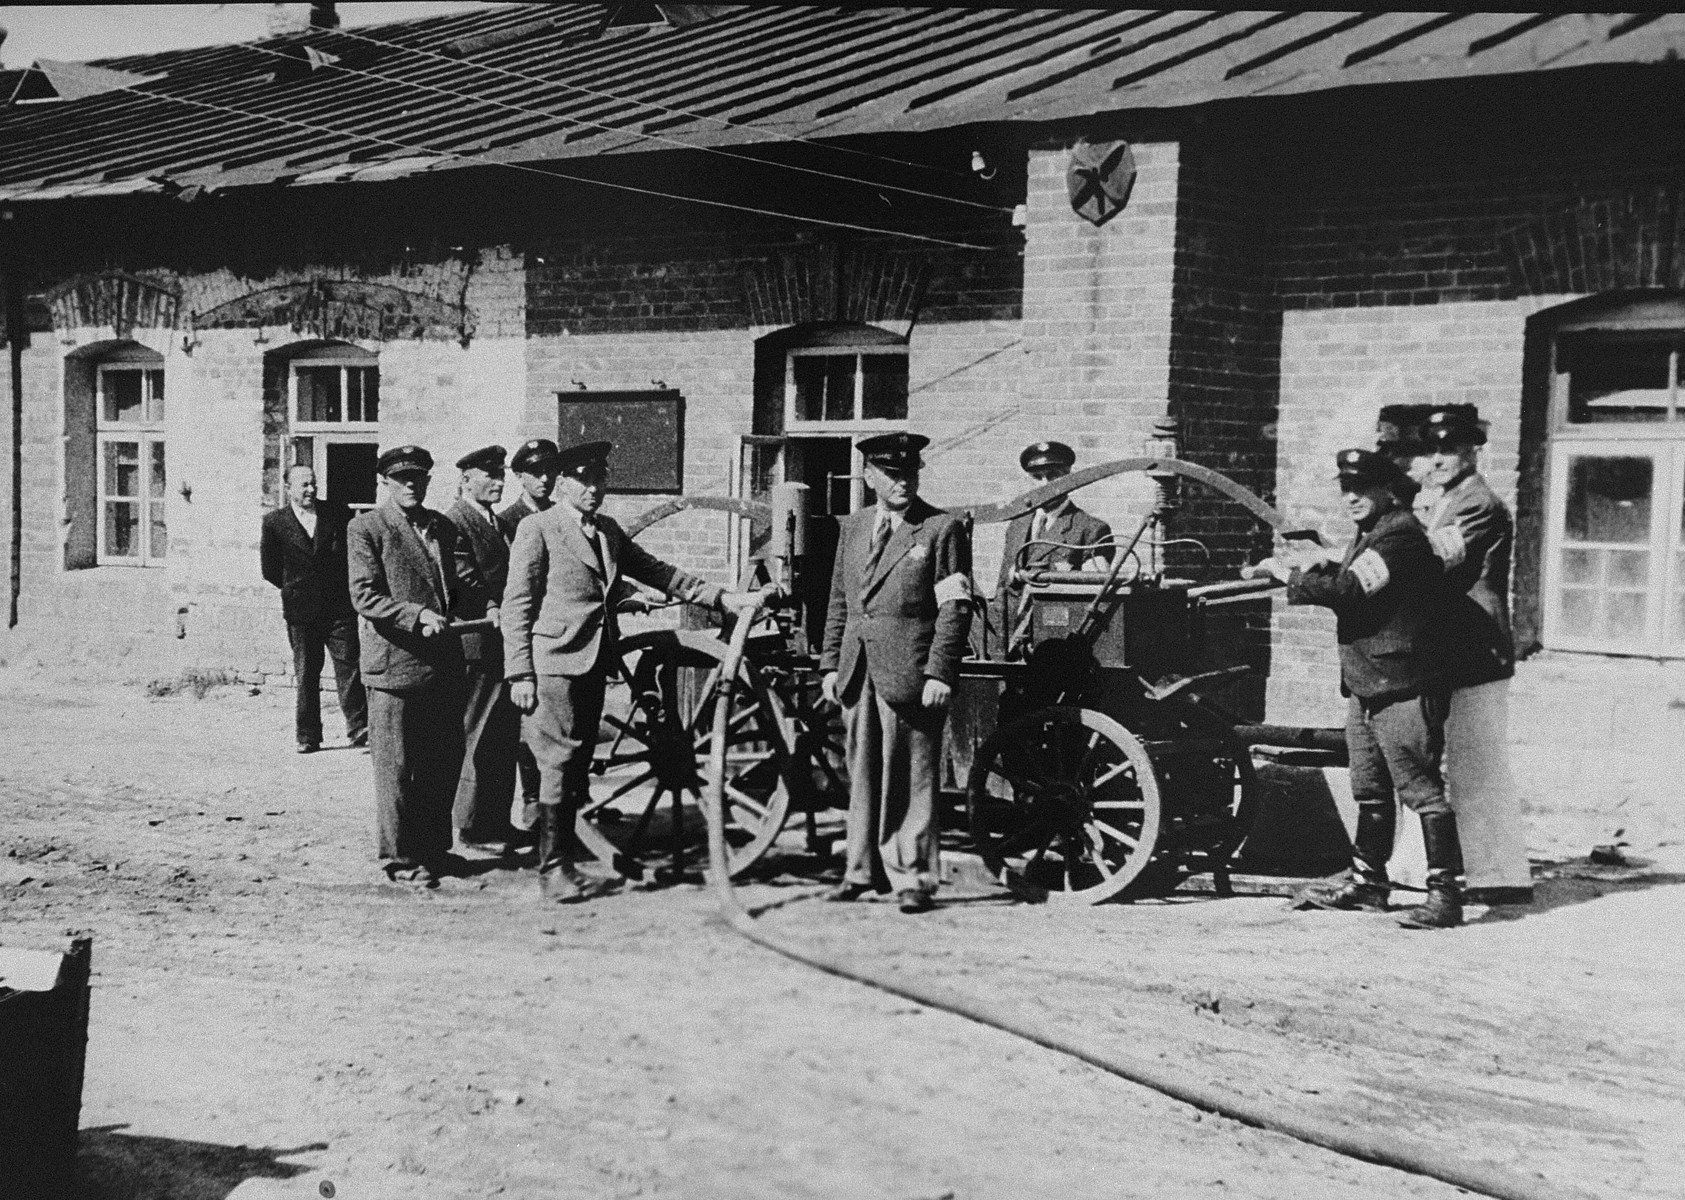 Members of the Jewish fire brigade in the Kovno ghetto pose outside around their fire vehicle.    Among those pictured is Yankel Kaplan (at the far right).